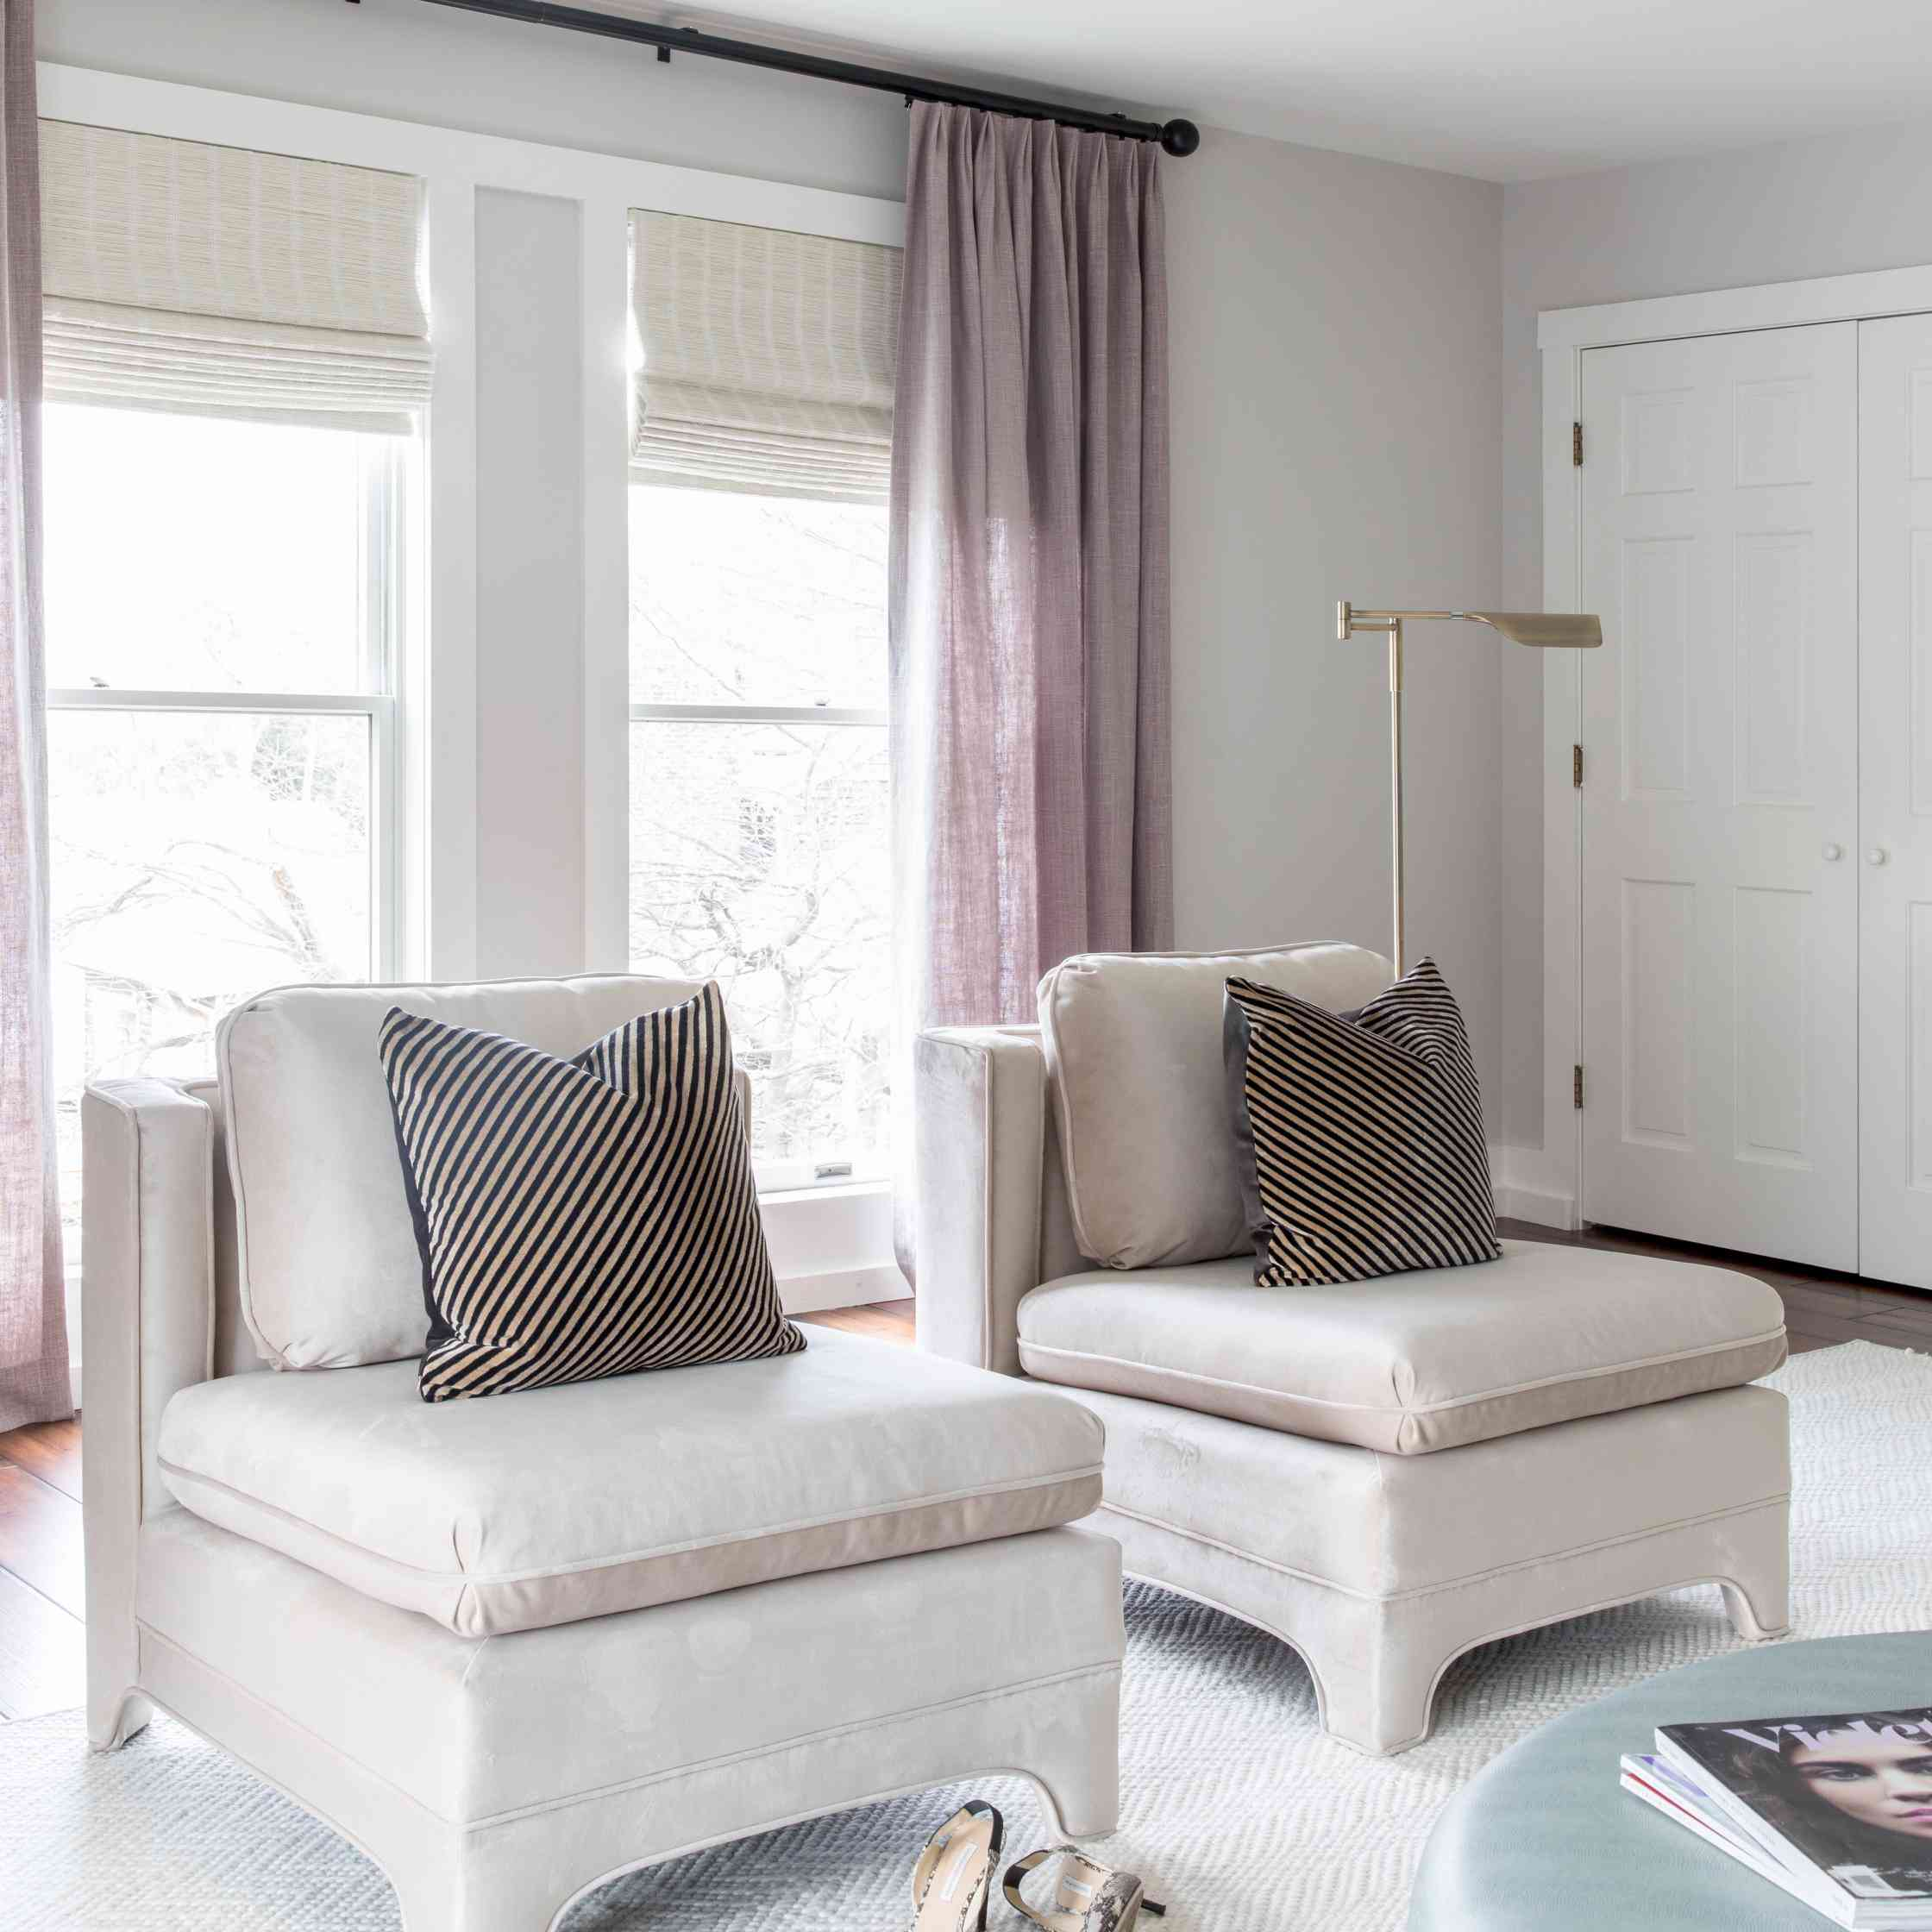 Room with mauve curtains